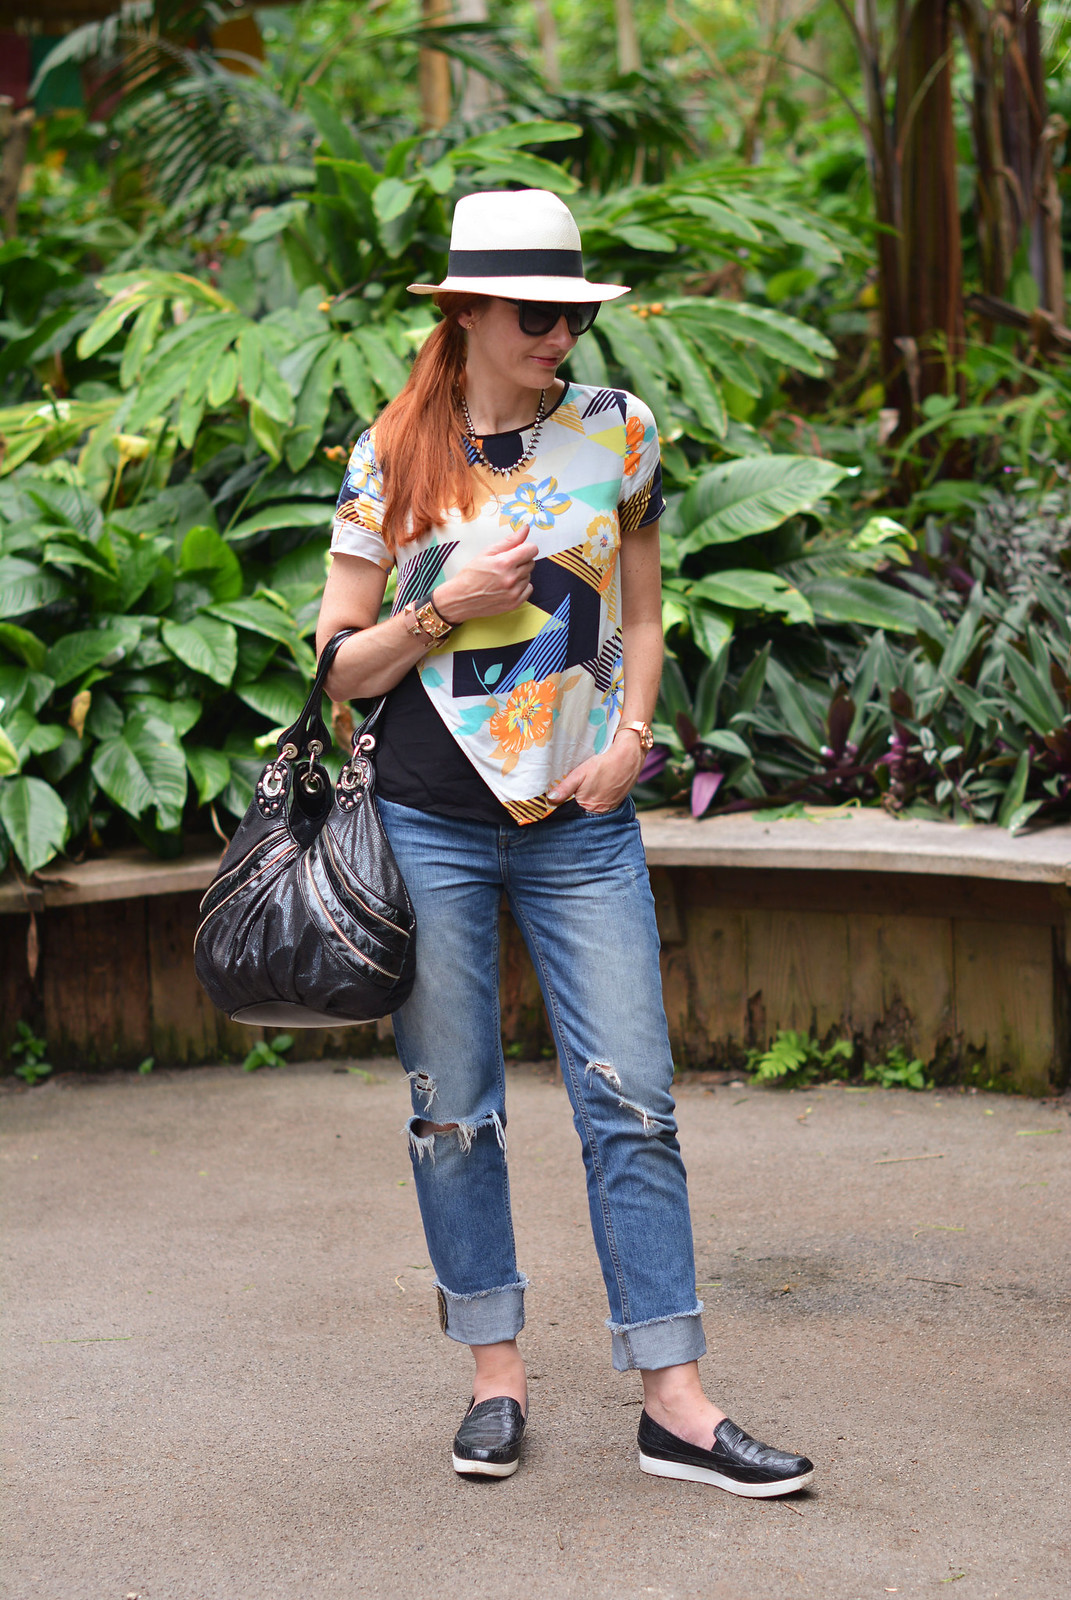 Summer style | Multi-coloured patterned top, distressed boyfriend jeans, Panama hat